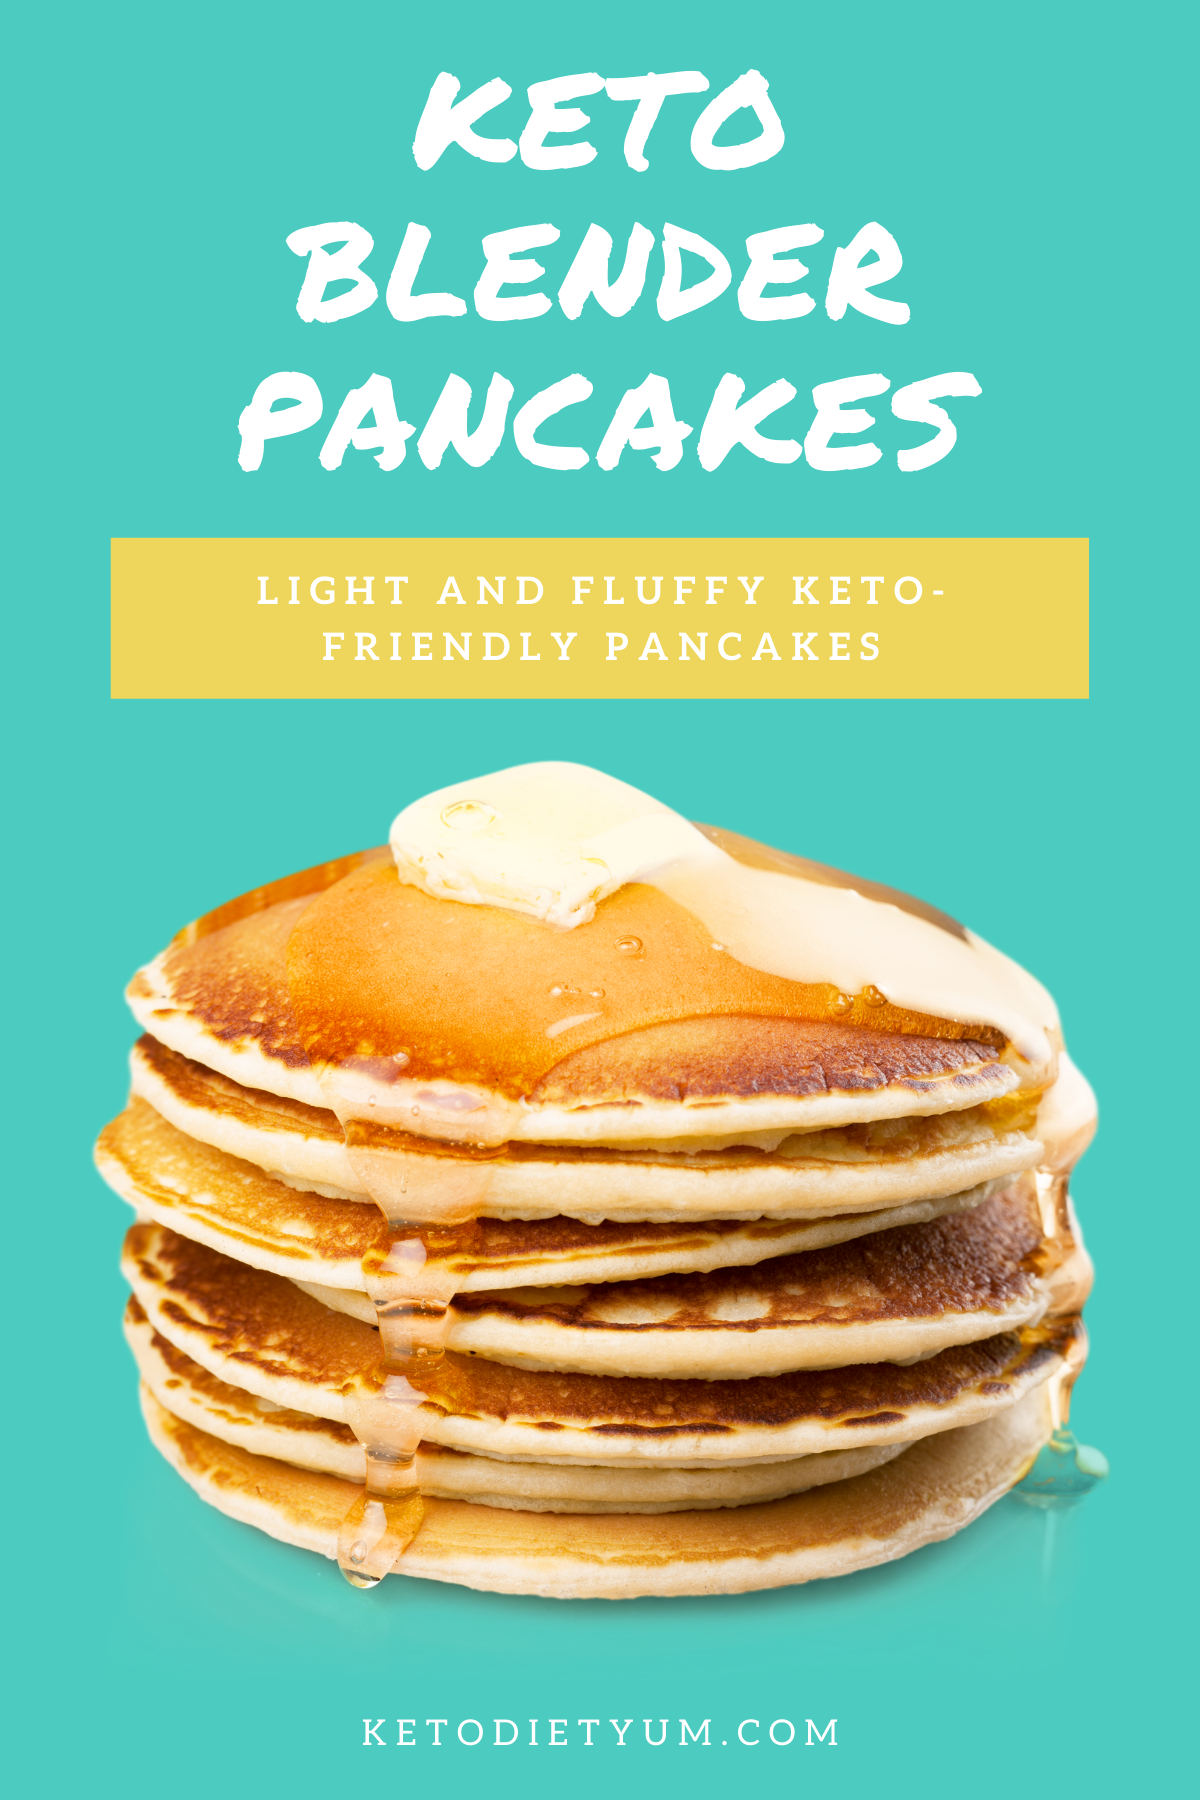 These light and fluffy keto-friendly pancakes are a lot easier to make than you might think. A great low-carb option if you're craving pancakes, give them a go! #ketodiet #ketorecipes #lowcarbrecipes